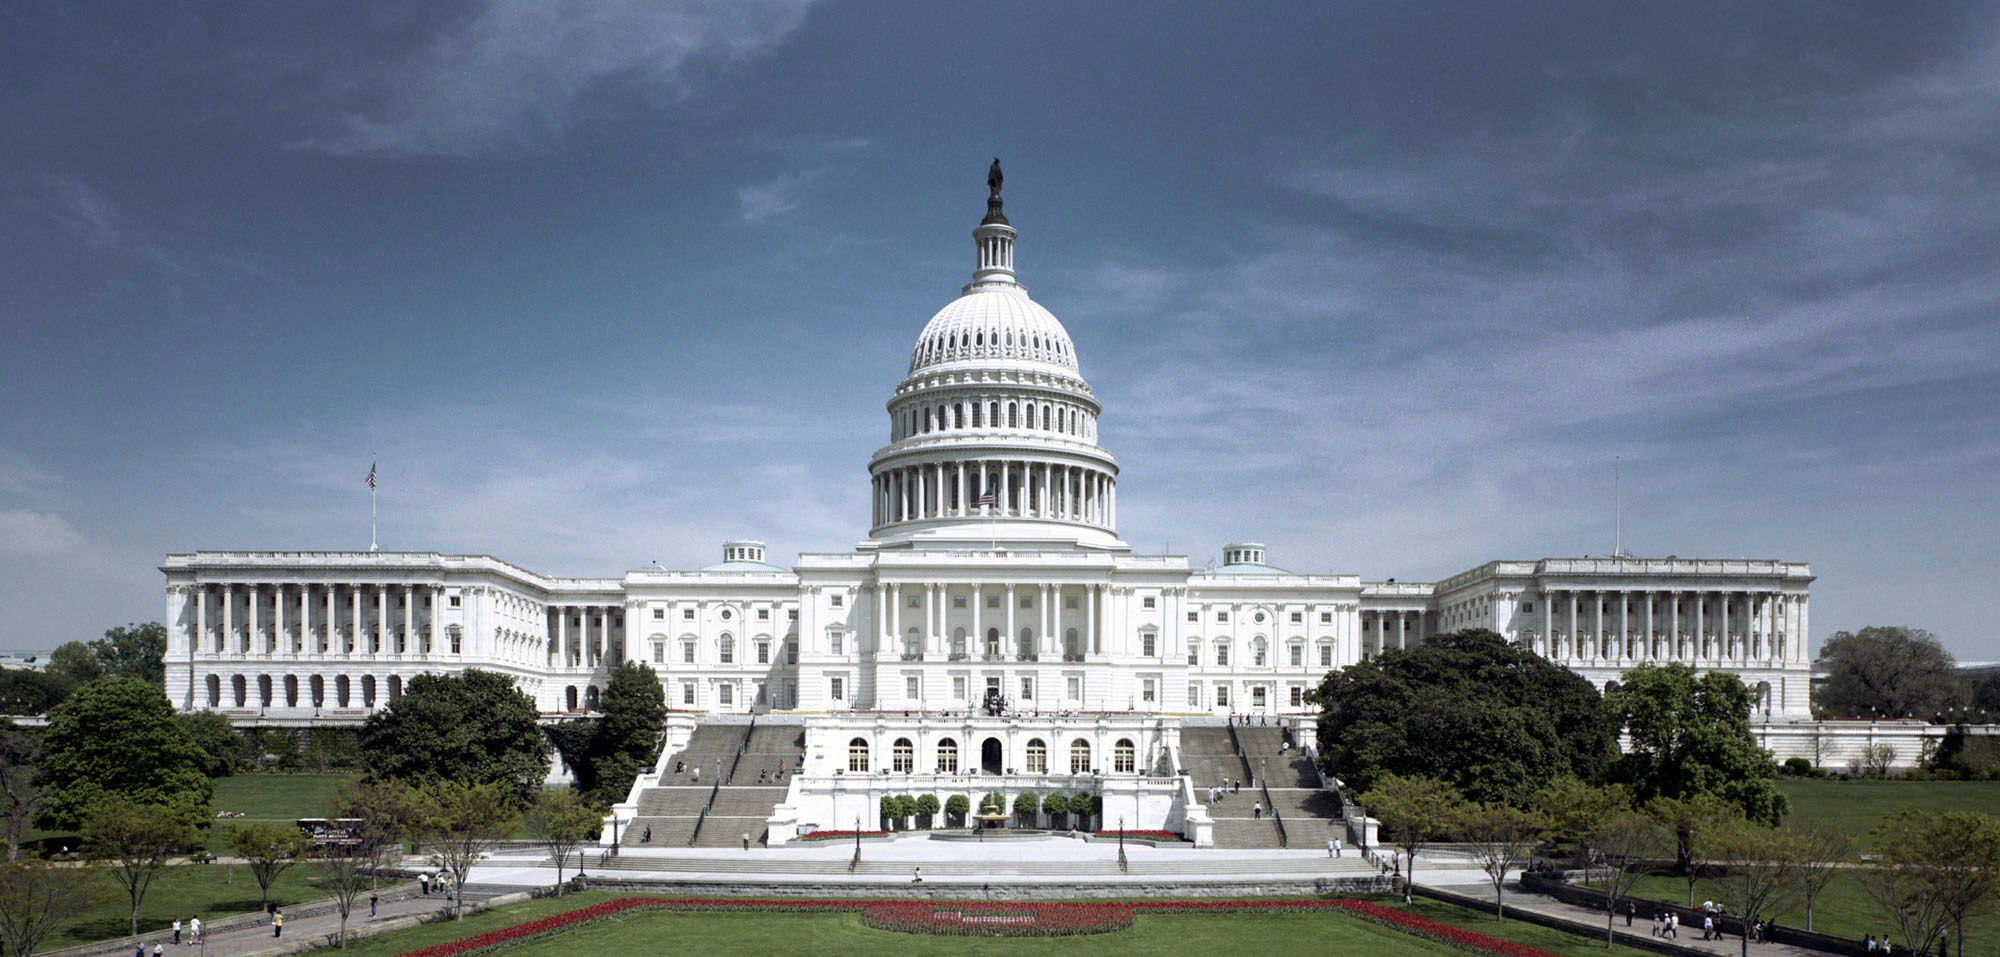 What is Wrong with the US Congress and Senate?